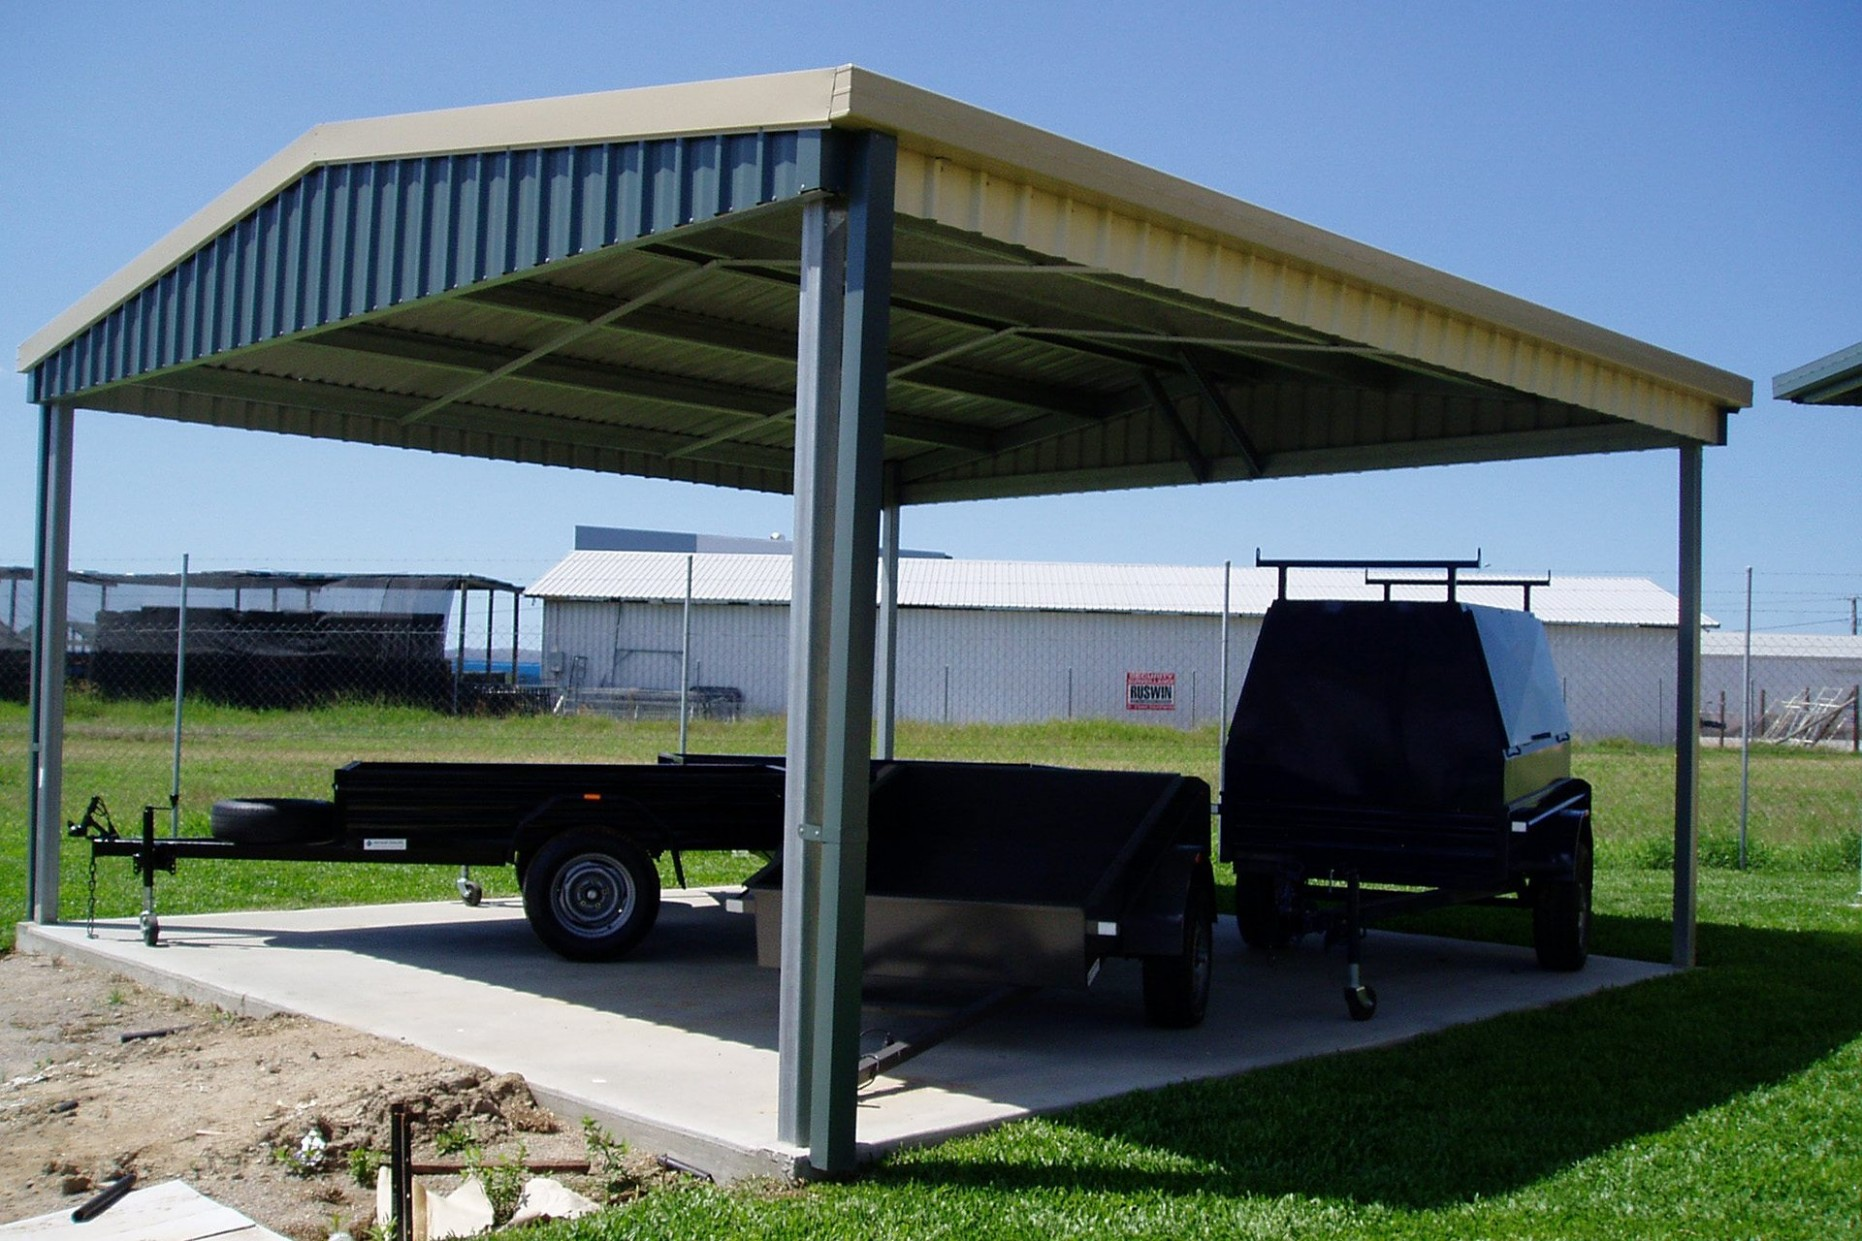 Top 11 Trends In Carports And Sheds For Sale To Watch | carports and sheds for sale